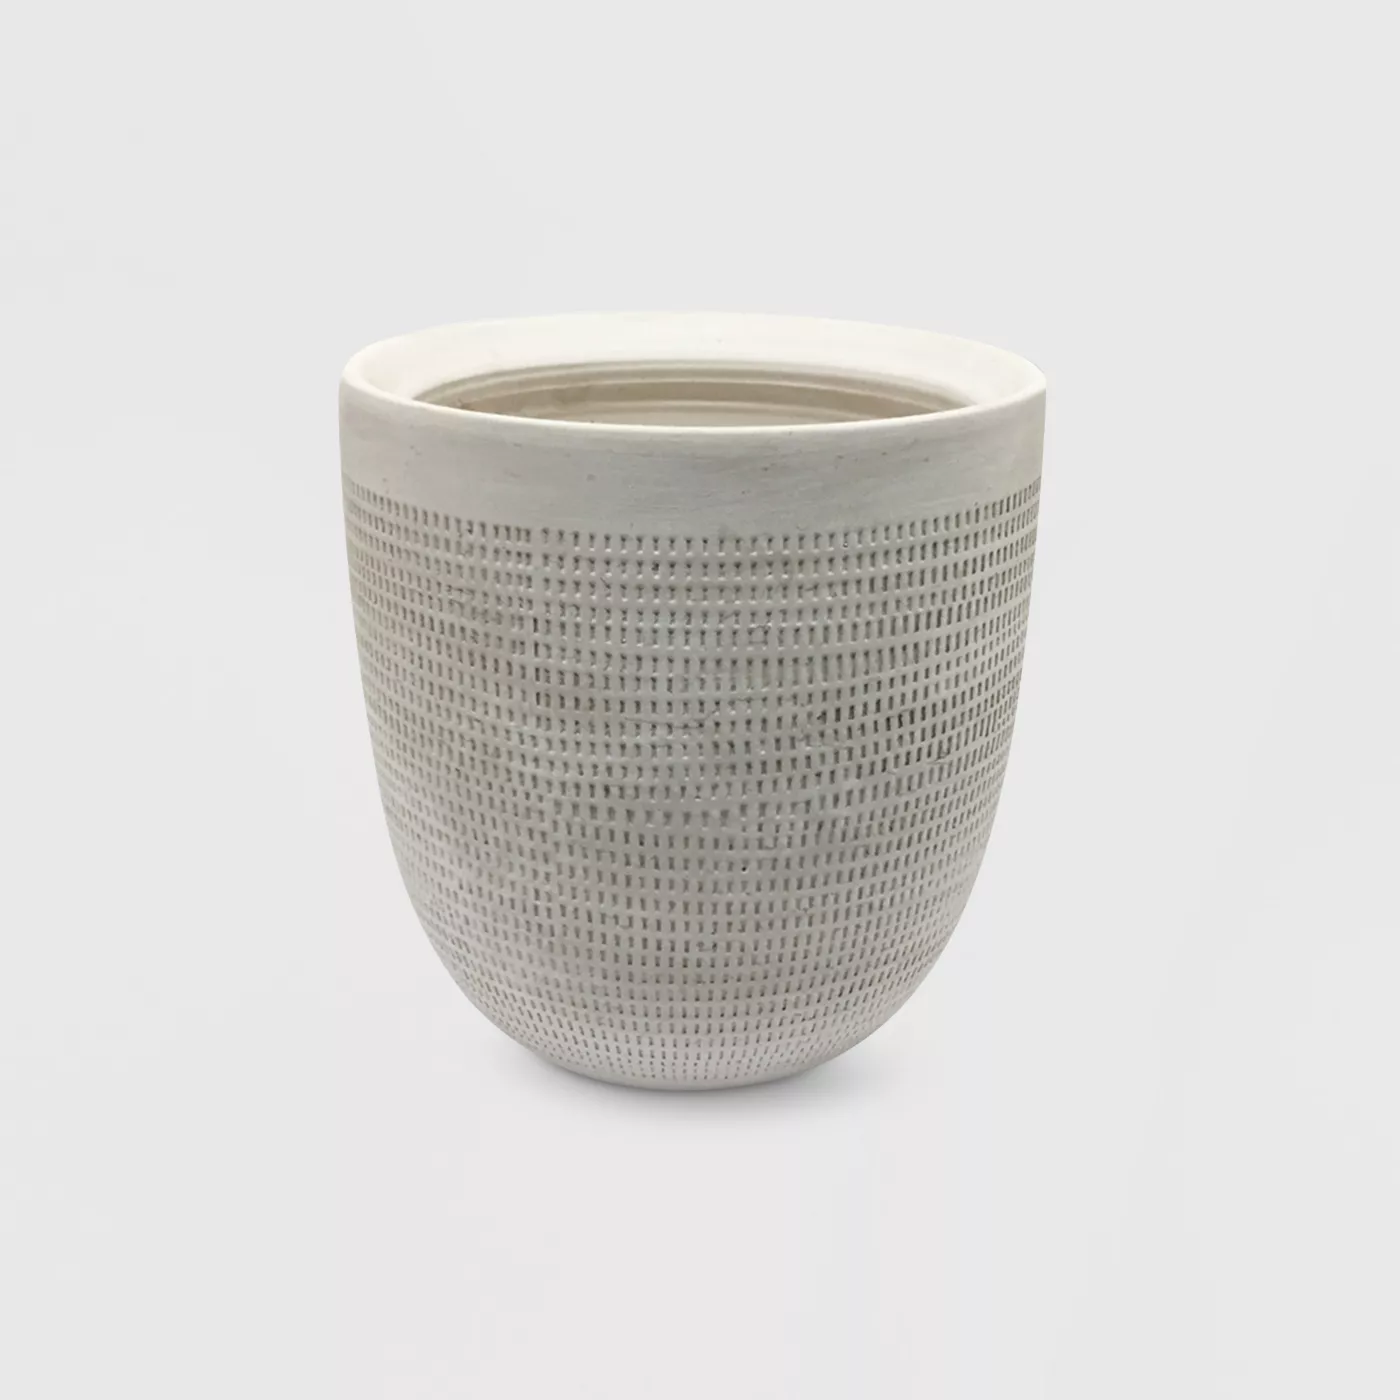 Textured Ceramic Planter